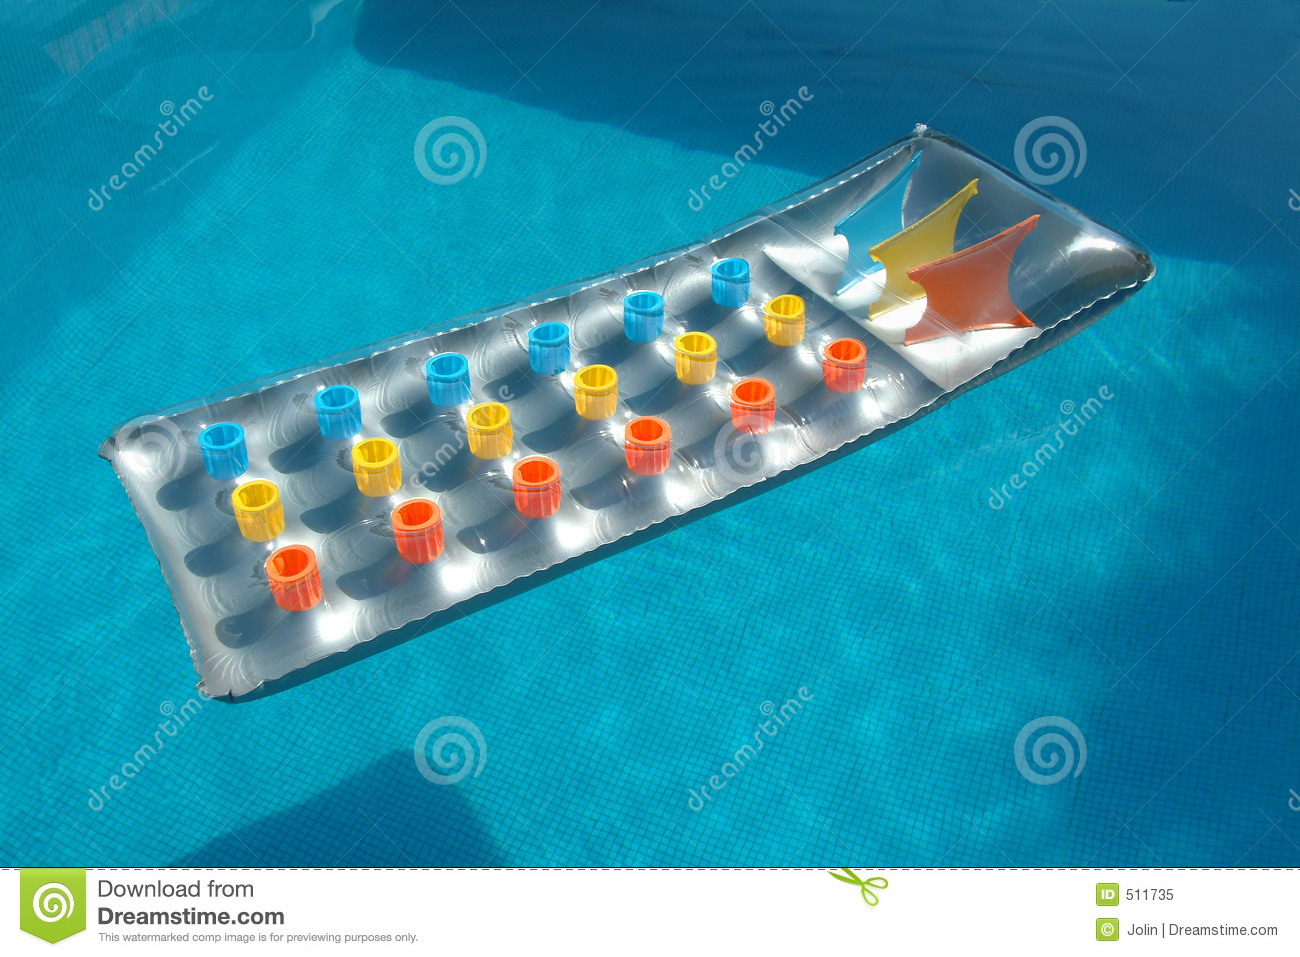 Bed in the swimming pool royalty free stock photo image for Swimming pool bed